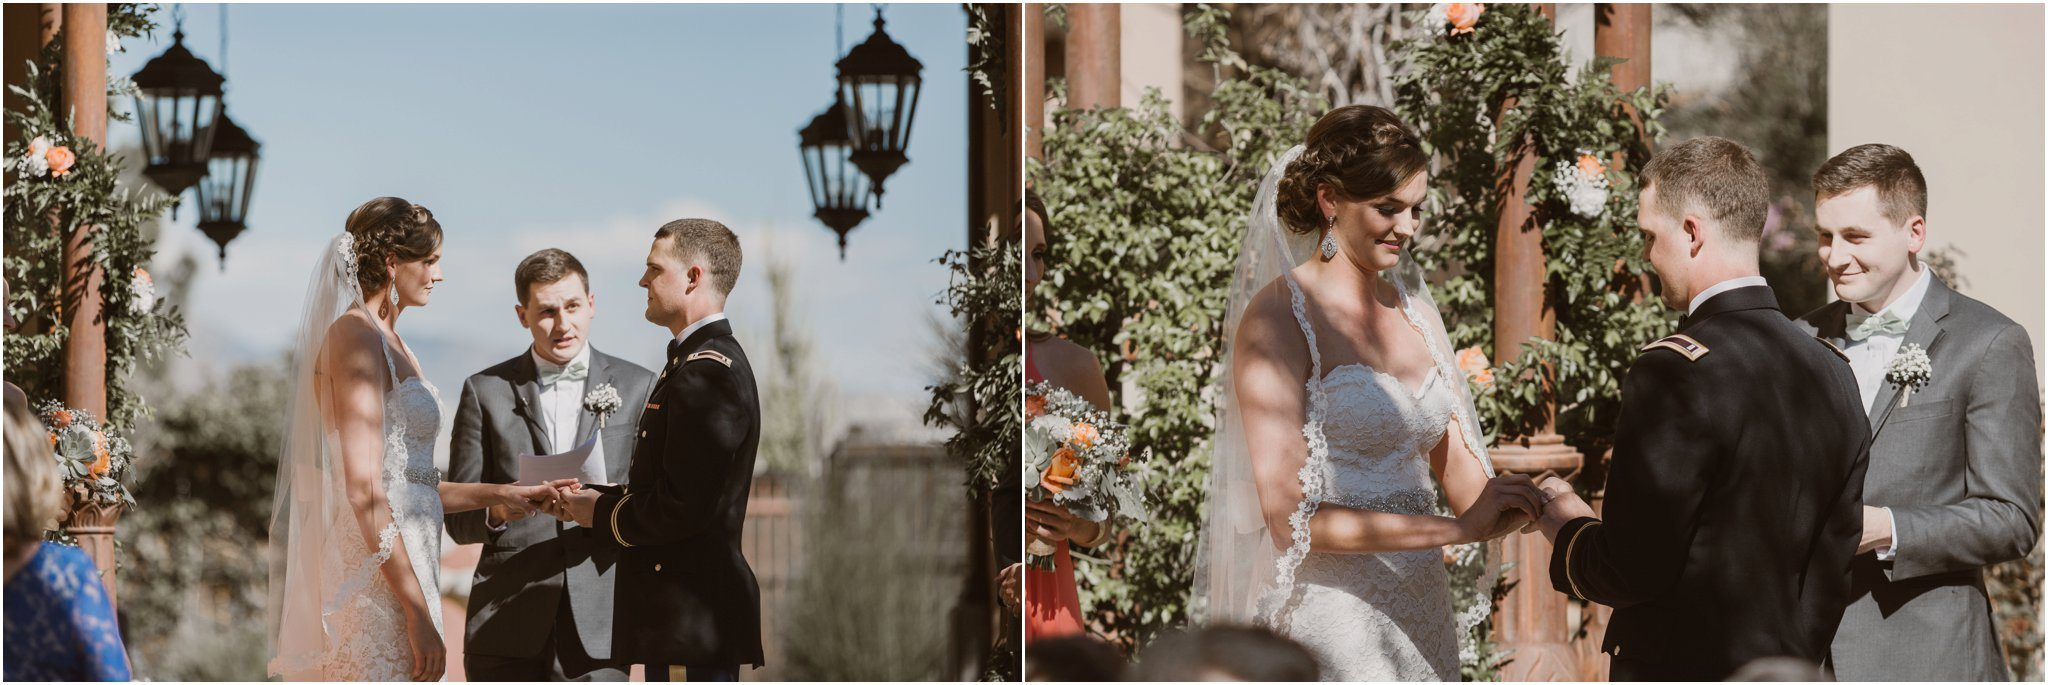 27Blue Rose Photography_ Albuquerque Wedding Photographer_ Santa Fe Wedding Photographers